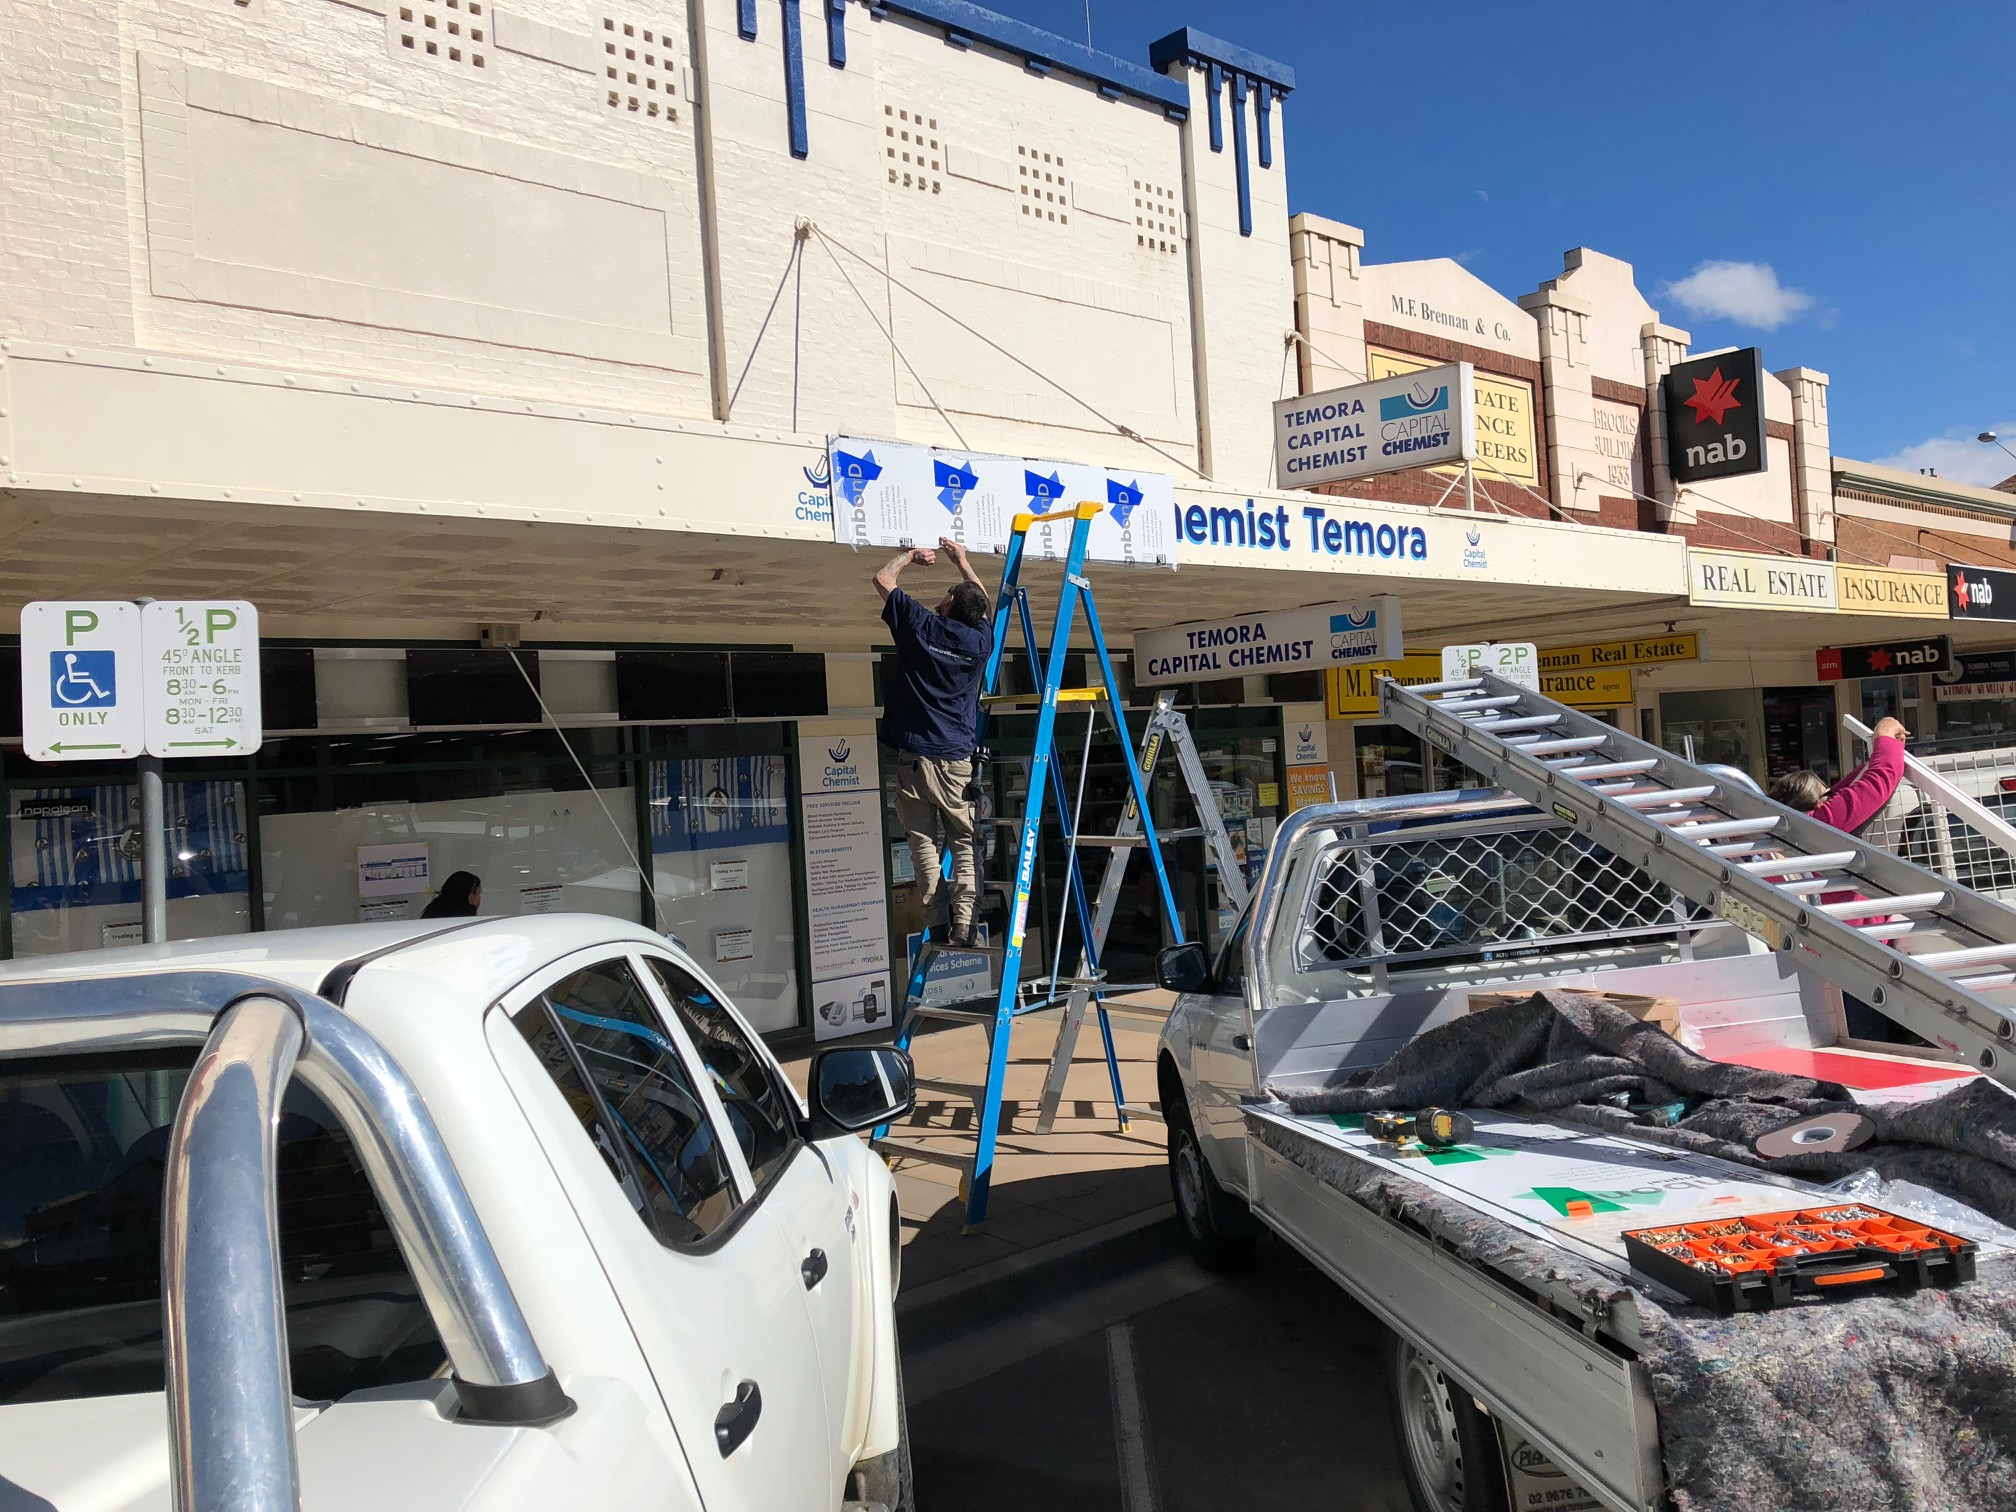 Our Canberra design firm spent time installing signage at the Temora location of Capital Chemist.